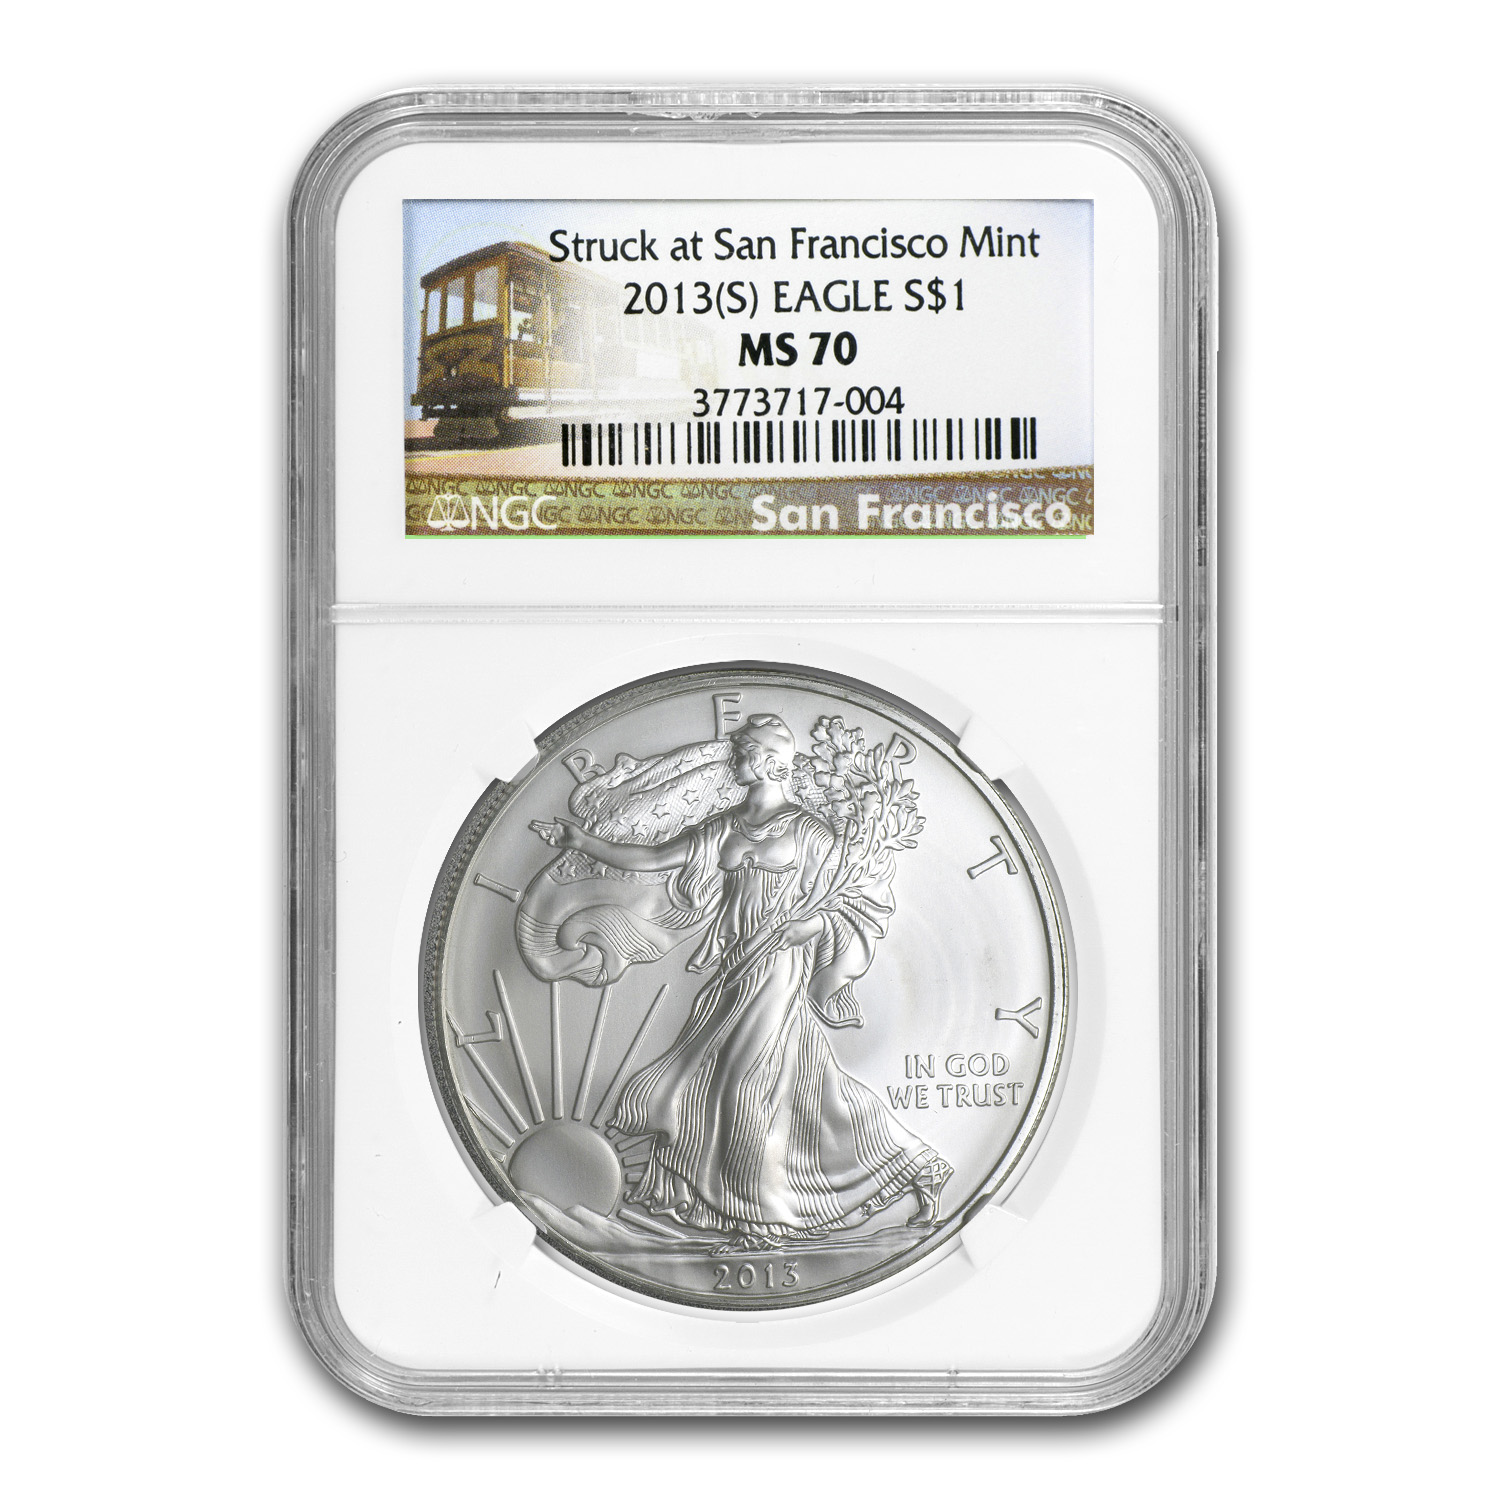 2013 (S) Silver American Eagle - MS-70 NGC - Trolley Label